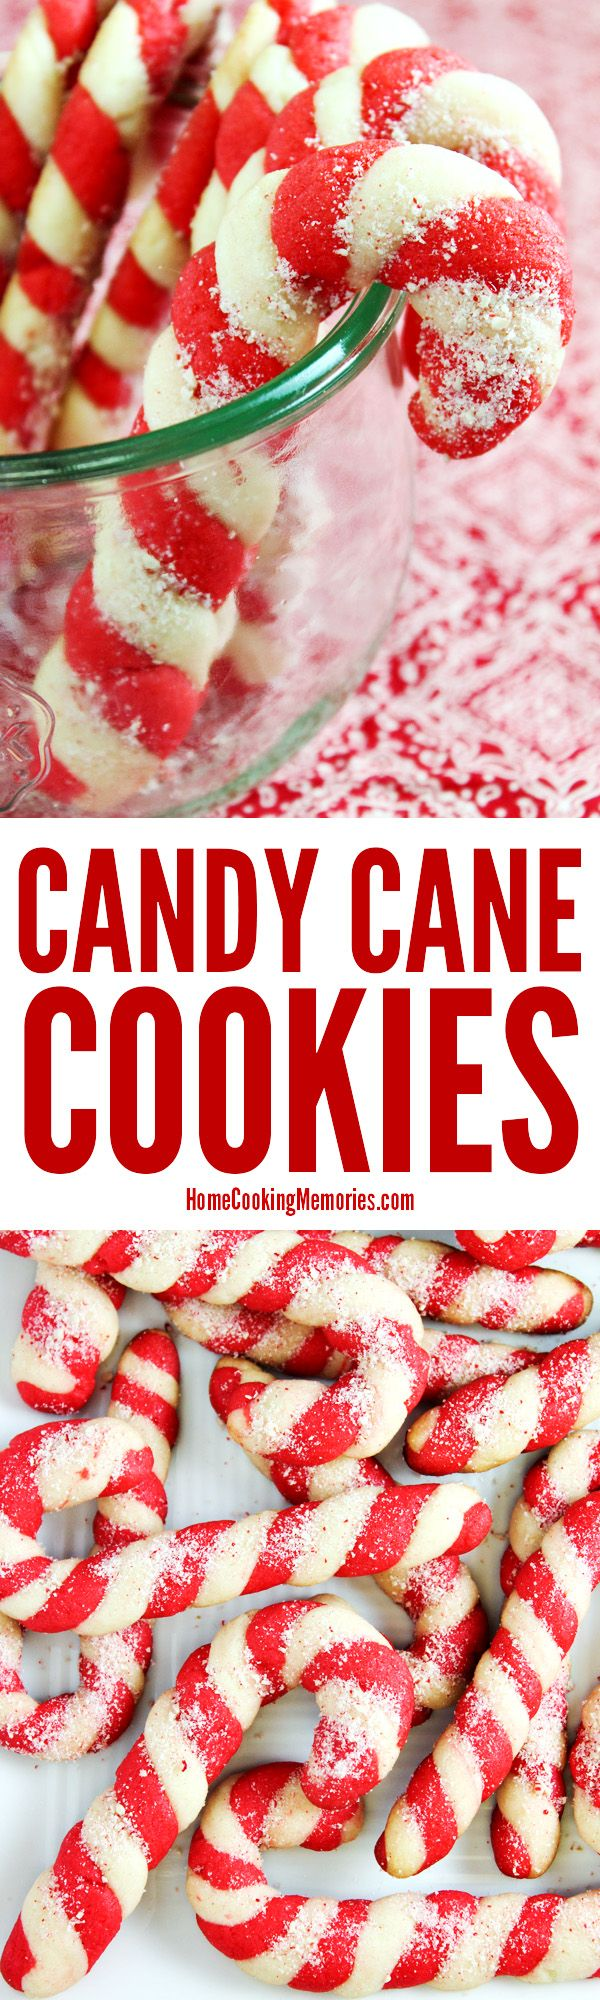 Christmas Candy Cane Cookies recipe! Made from an easy cookie dough recipe with plenty of festive peppermint flavor. The colorful dough is twisted to look like a candy cane. A favorite at holiday parties & cookie exchanges. via @HomeCookMemory